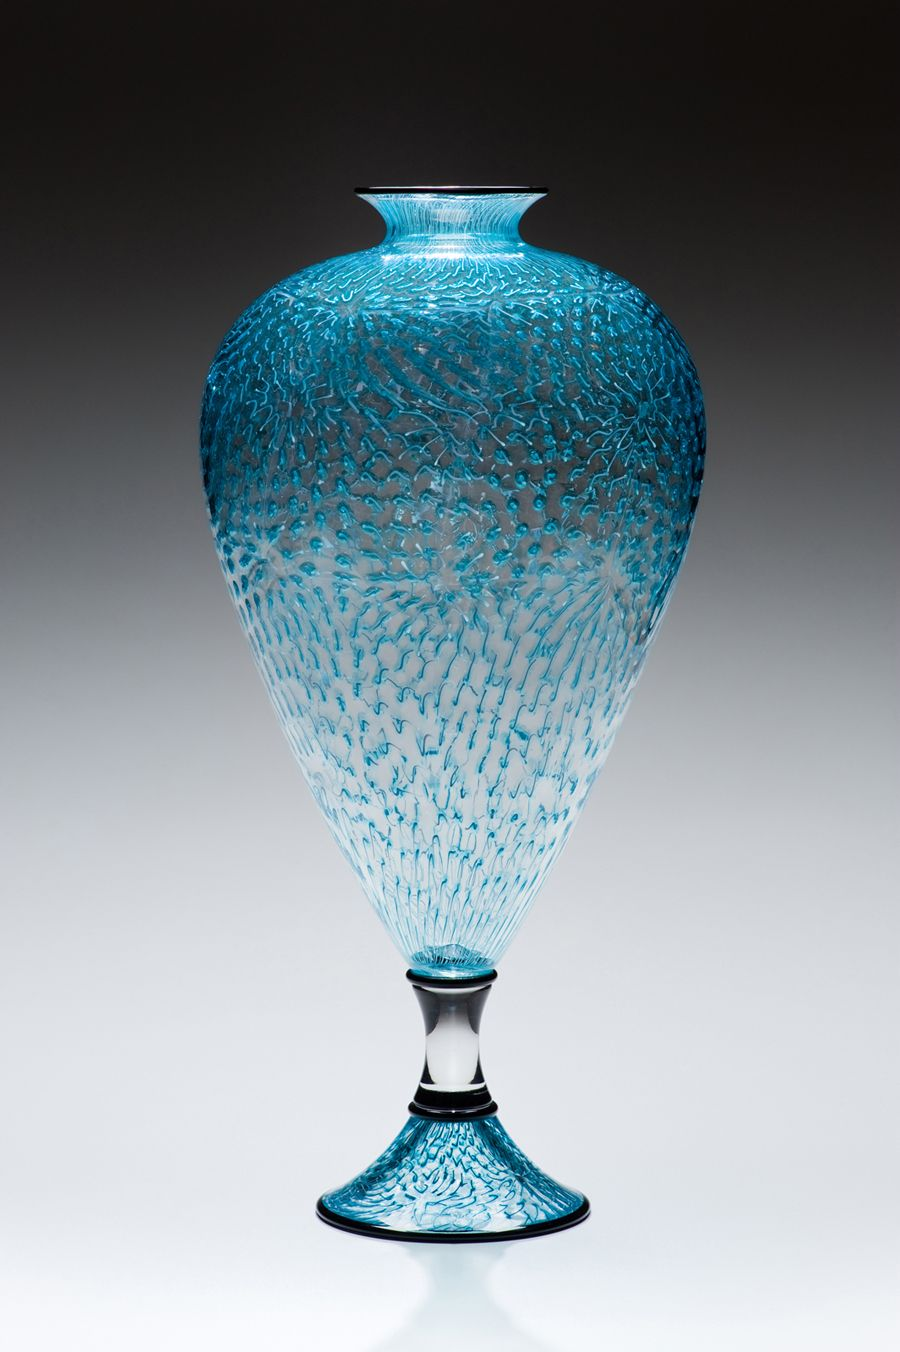 Hand Blown Art Glass from Kenny Pieper Hand Blown Glass